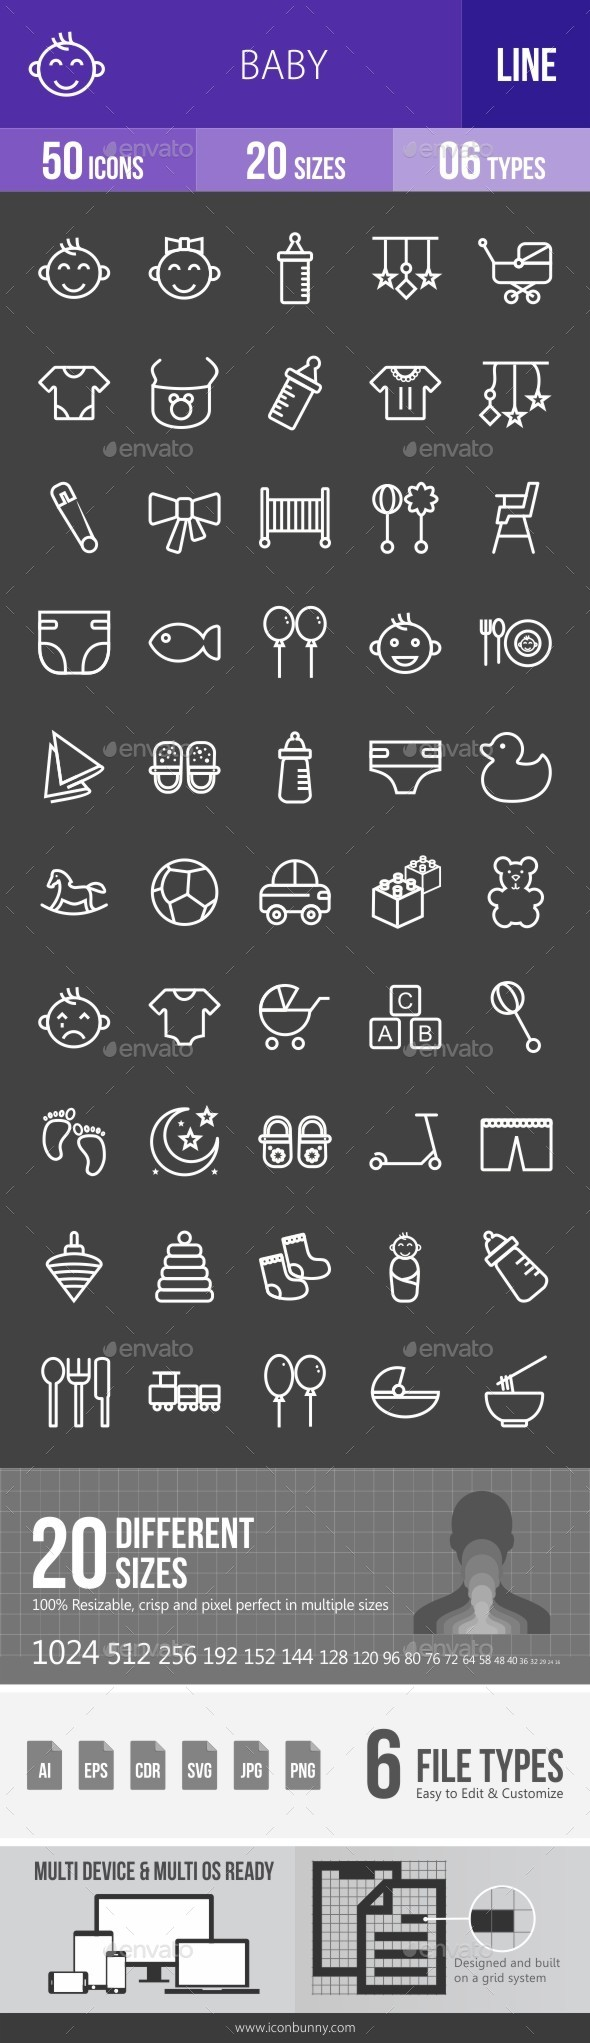 Baby Line Inverted Icons - Icons